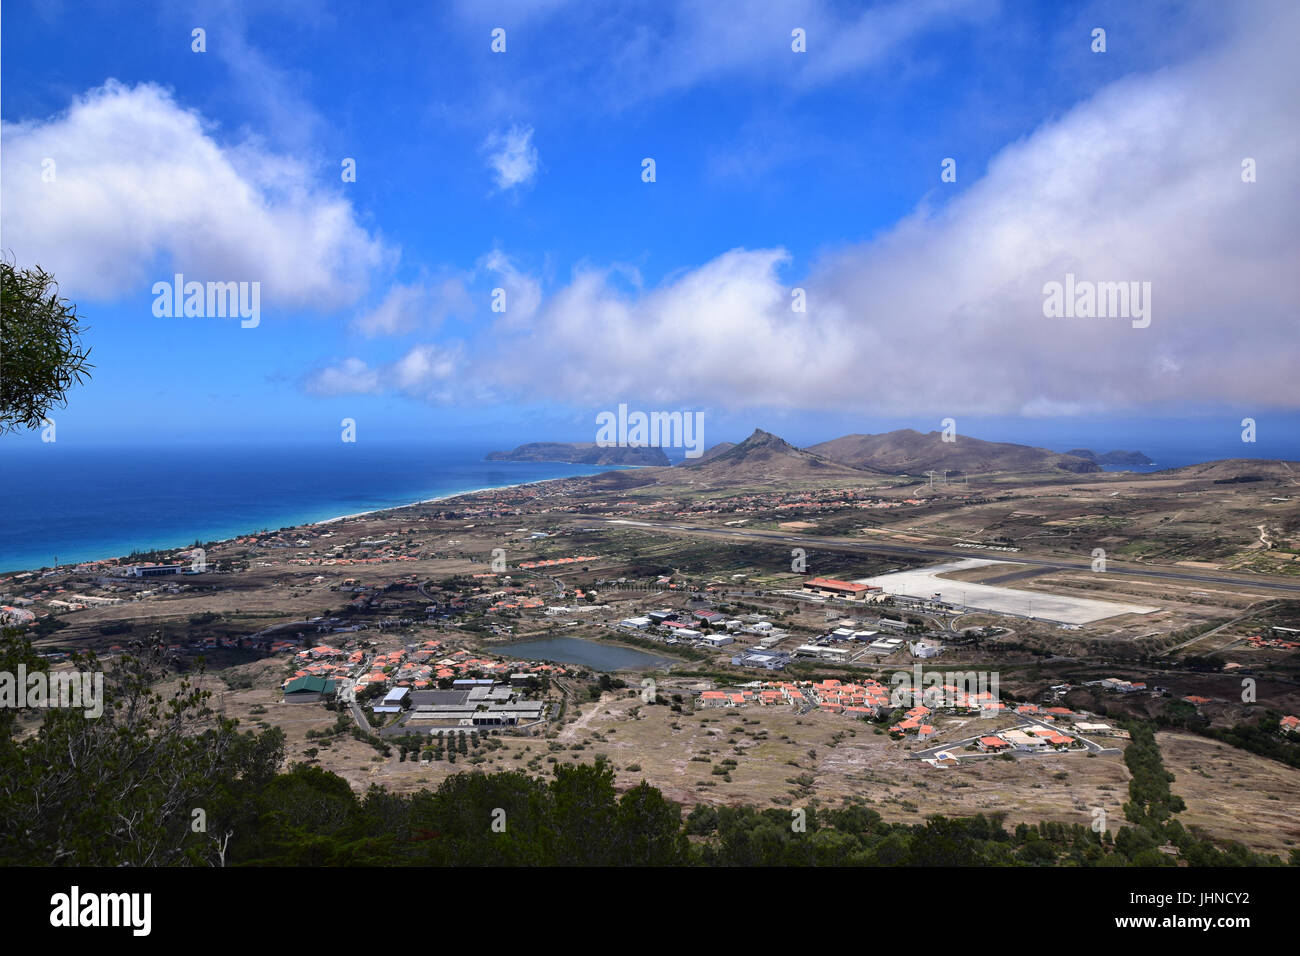 View of the town of Vila Baleira, Ilheu da Cal and International Airport from Pico do Castelo on Portuguese Atlantic - Stock Image